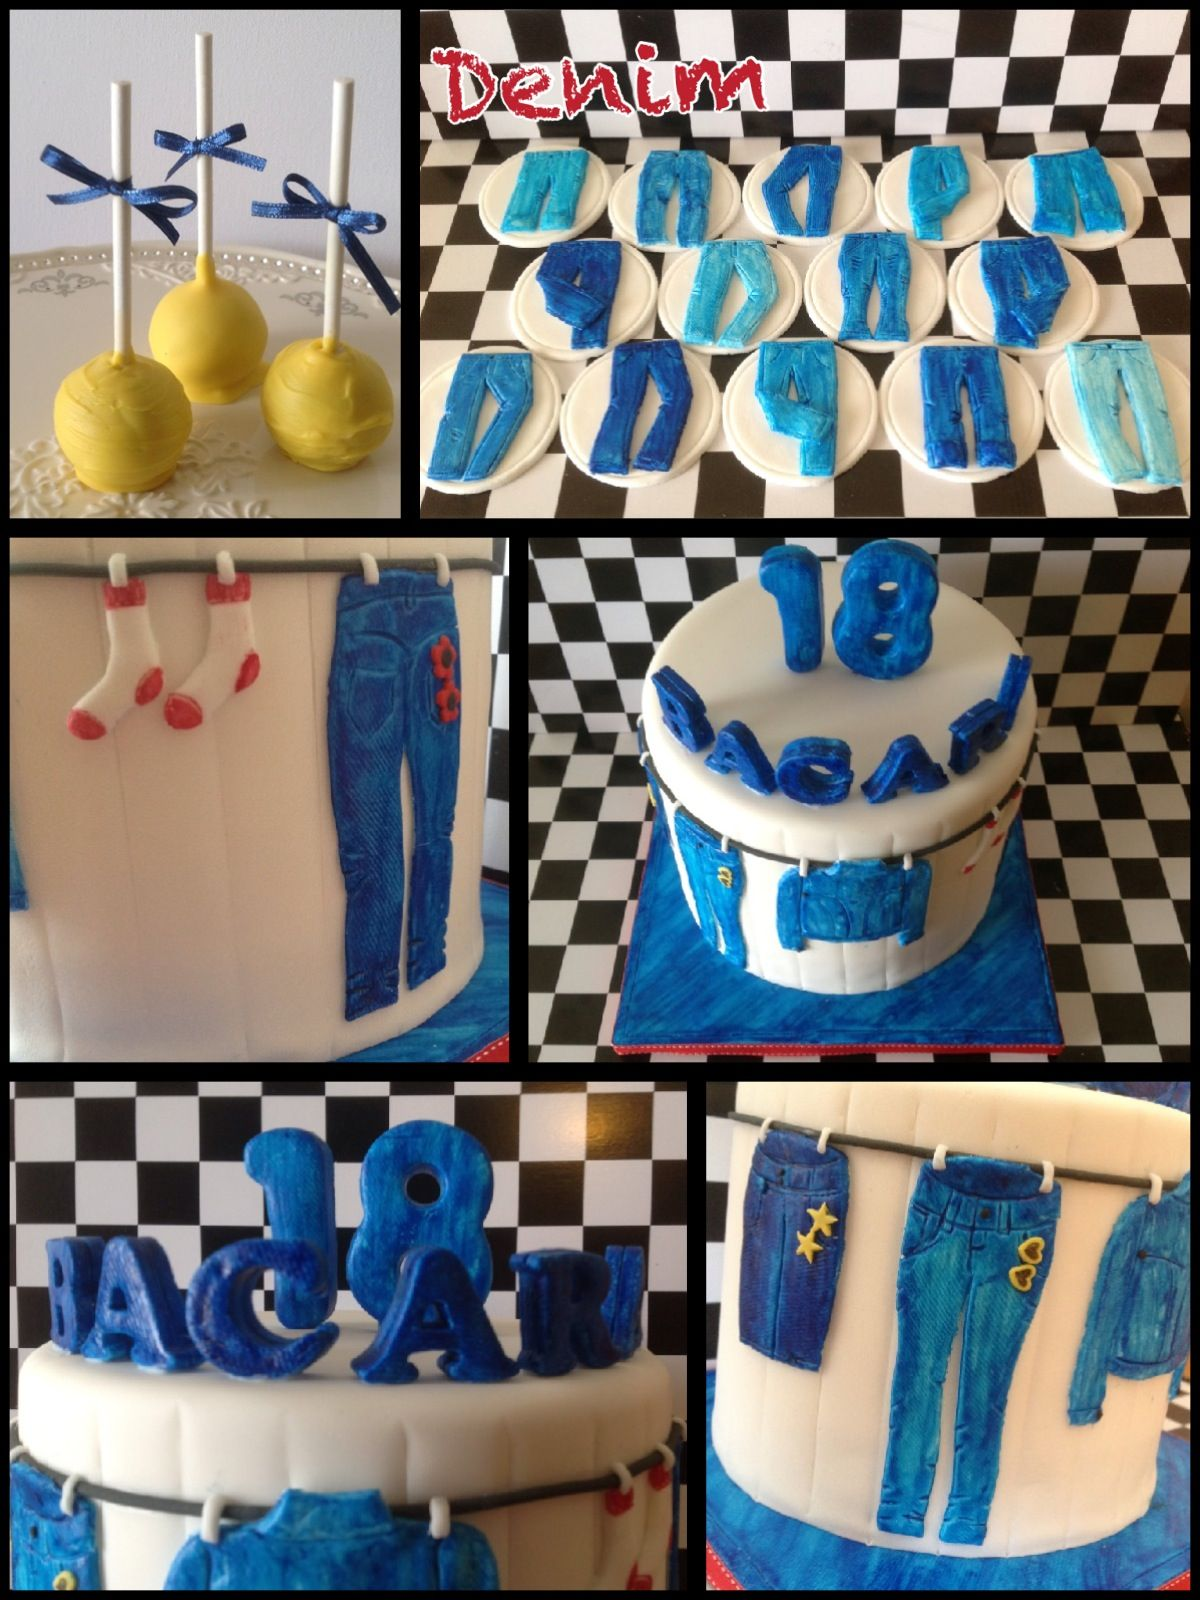 denim cake cake pops cupcakes bake make decorate pinterest cake pop fashion cupcakes. Black Bedroom Furniture Sets. Home Design Ideas